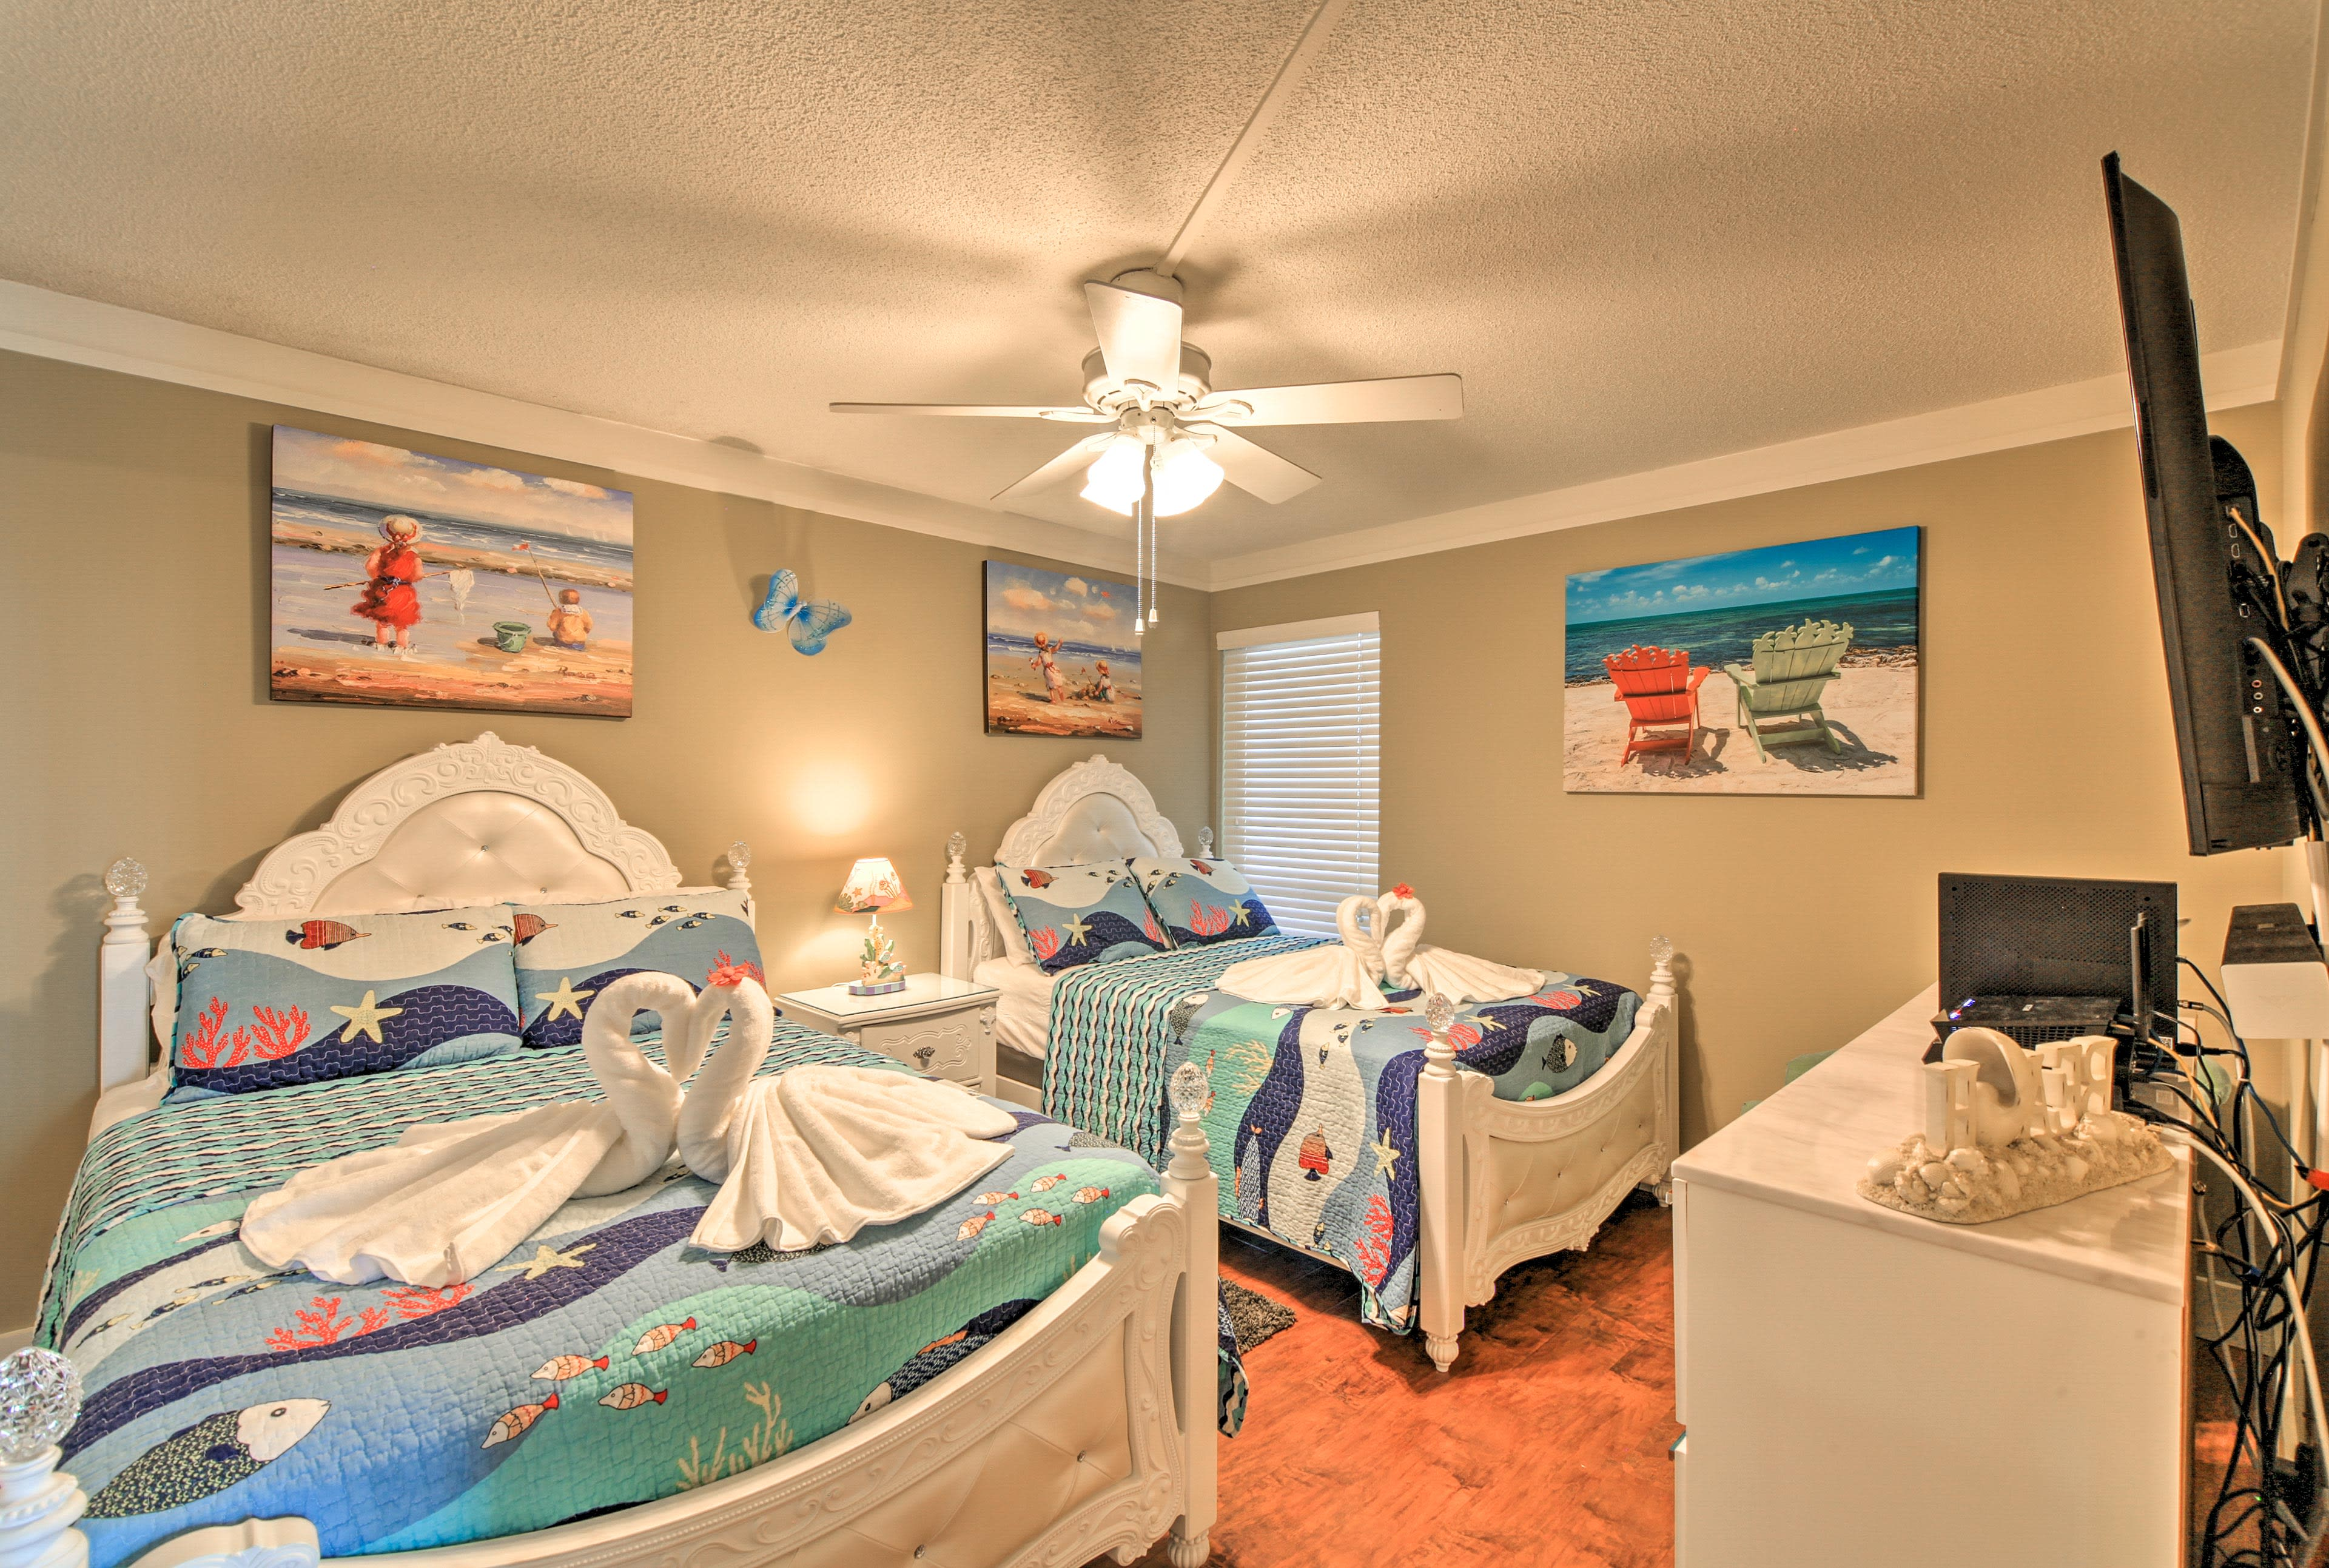 Kids will love sharing this room featuring nautical decor.